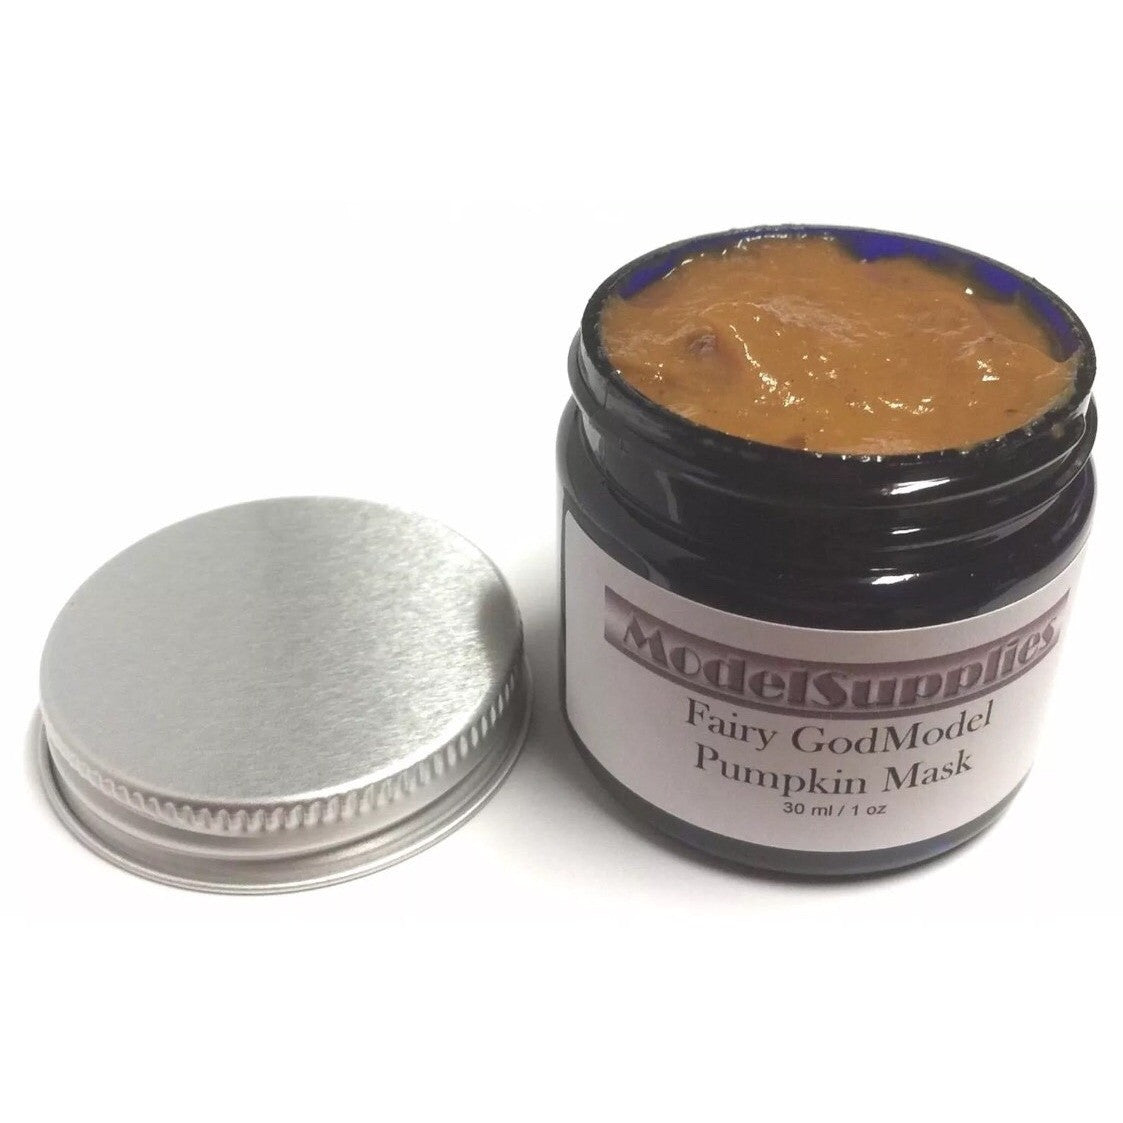 Fairy GodModel 5 Minute Pumpkin Mask Peel Enzymes Glycolic Acid Masque AHA Alpha - ModelSupplies